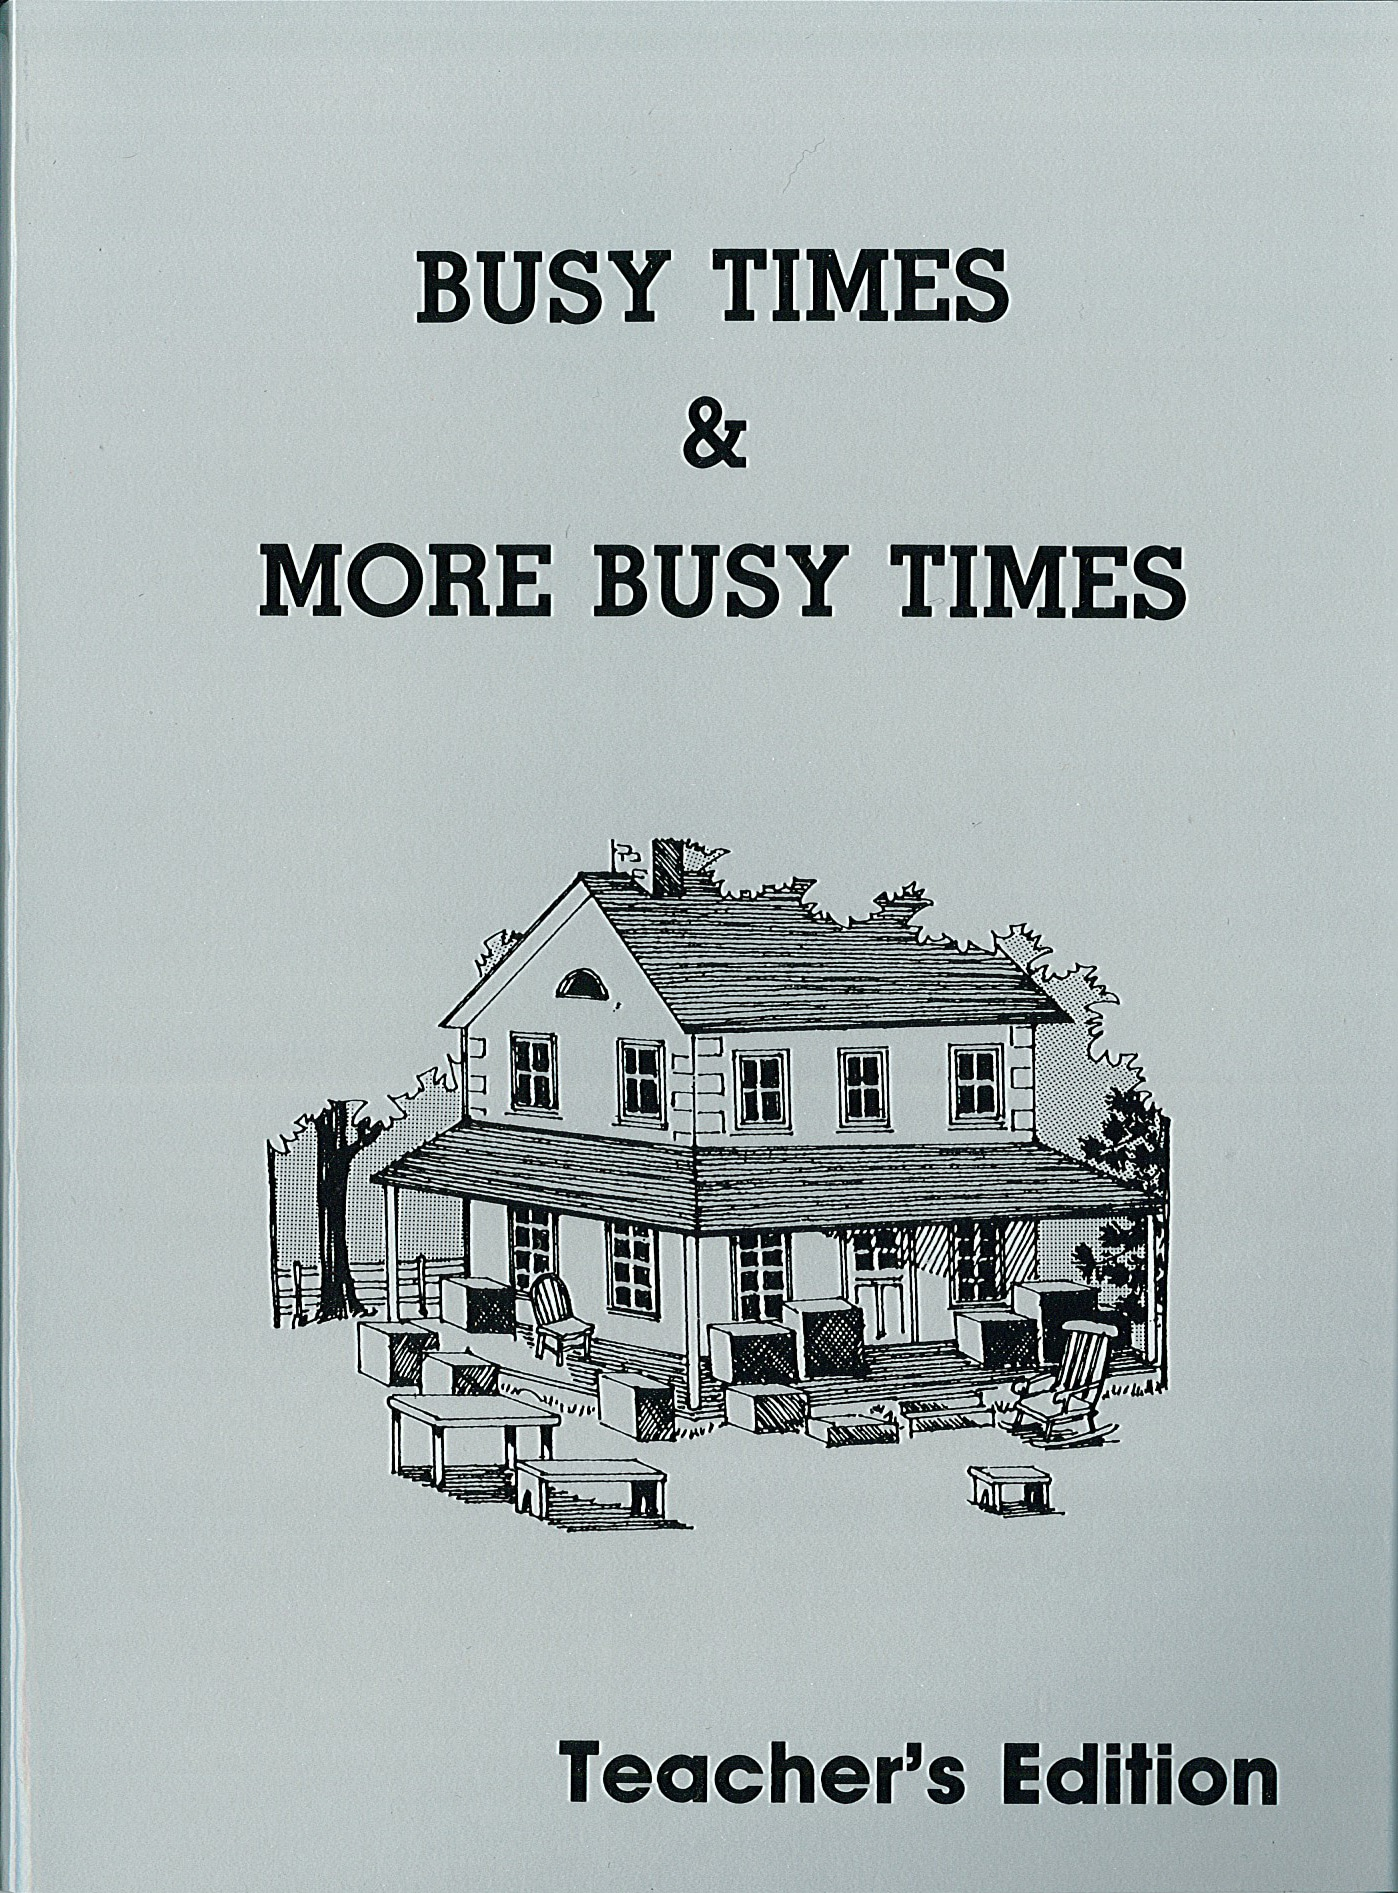 busy times and more busy times workbooks teacher s manual pathway rh christianlearning org busy times at disney world busy times at planet fitness